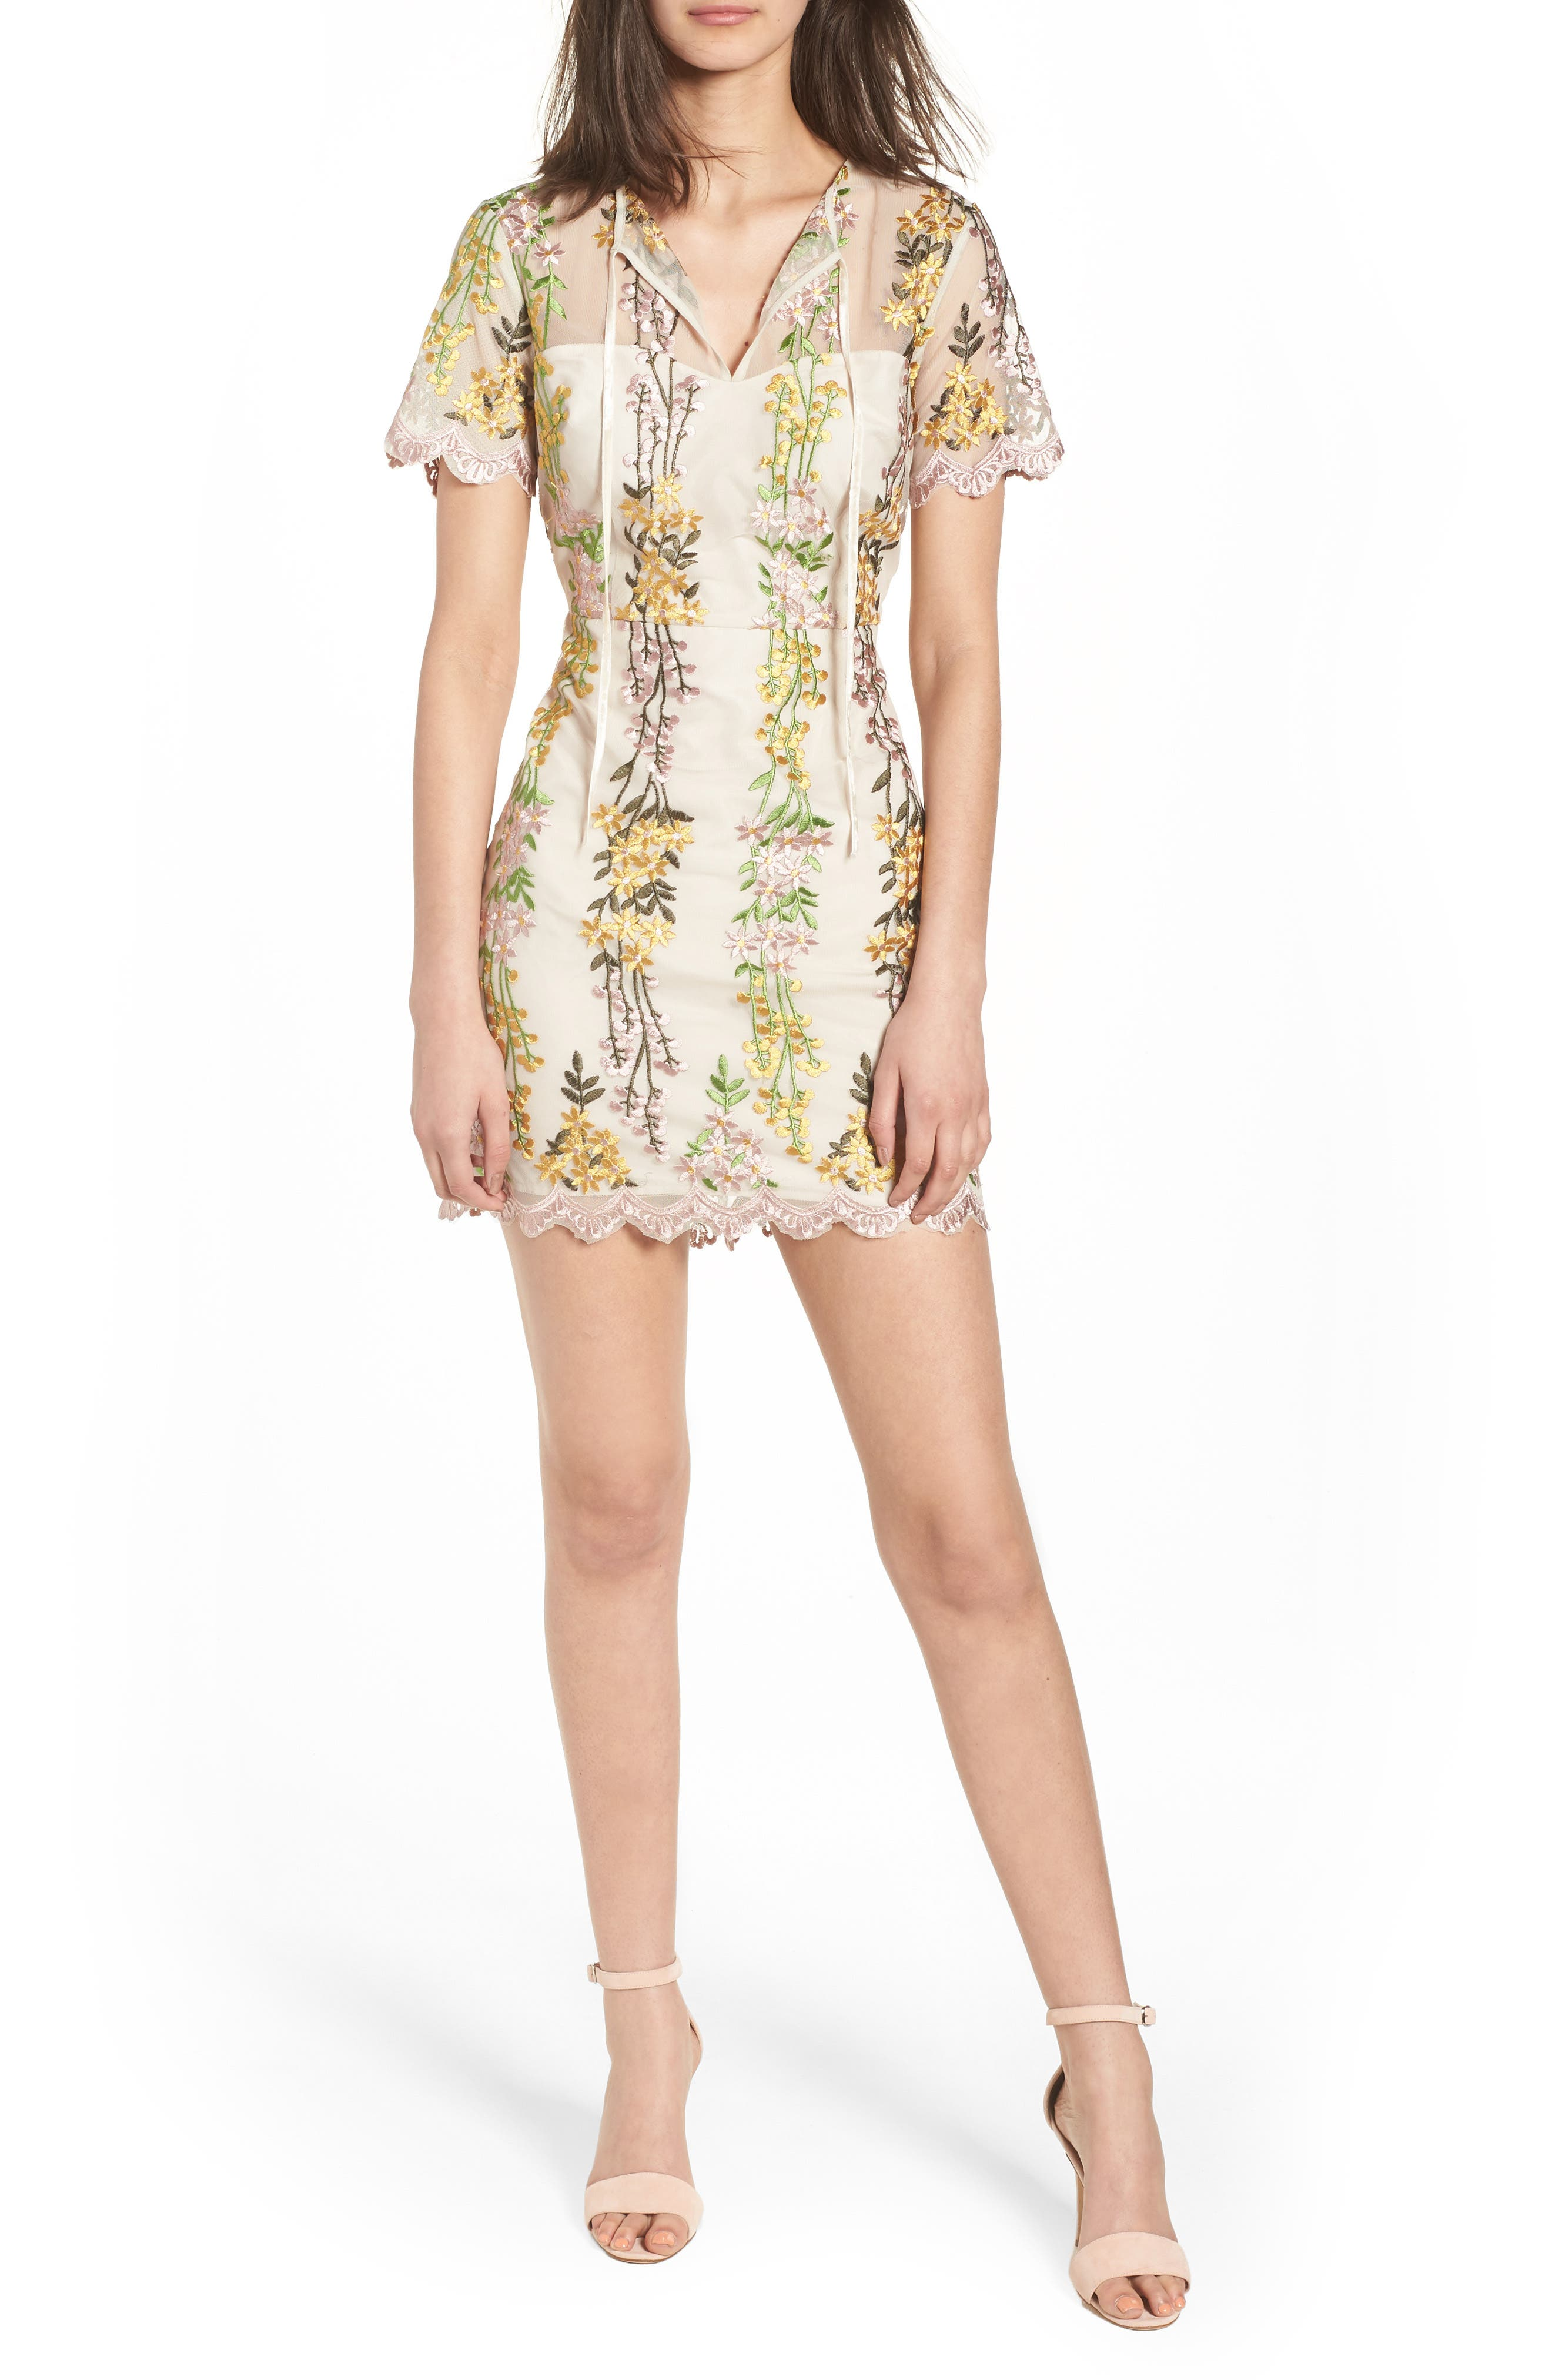 Gram Embroidered Minidress,                         Main,                         color, Soft Beige